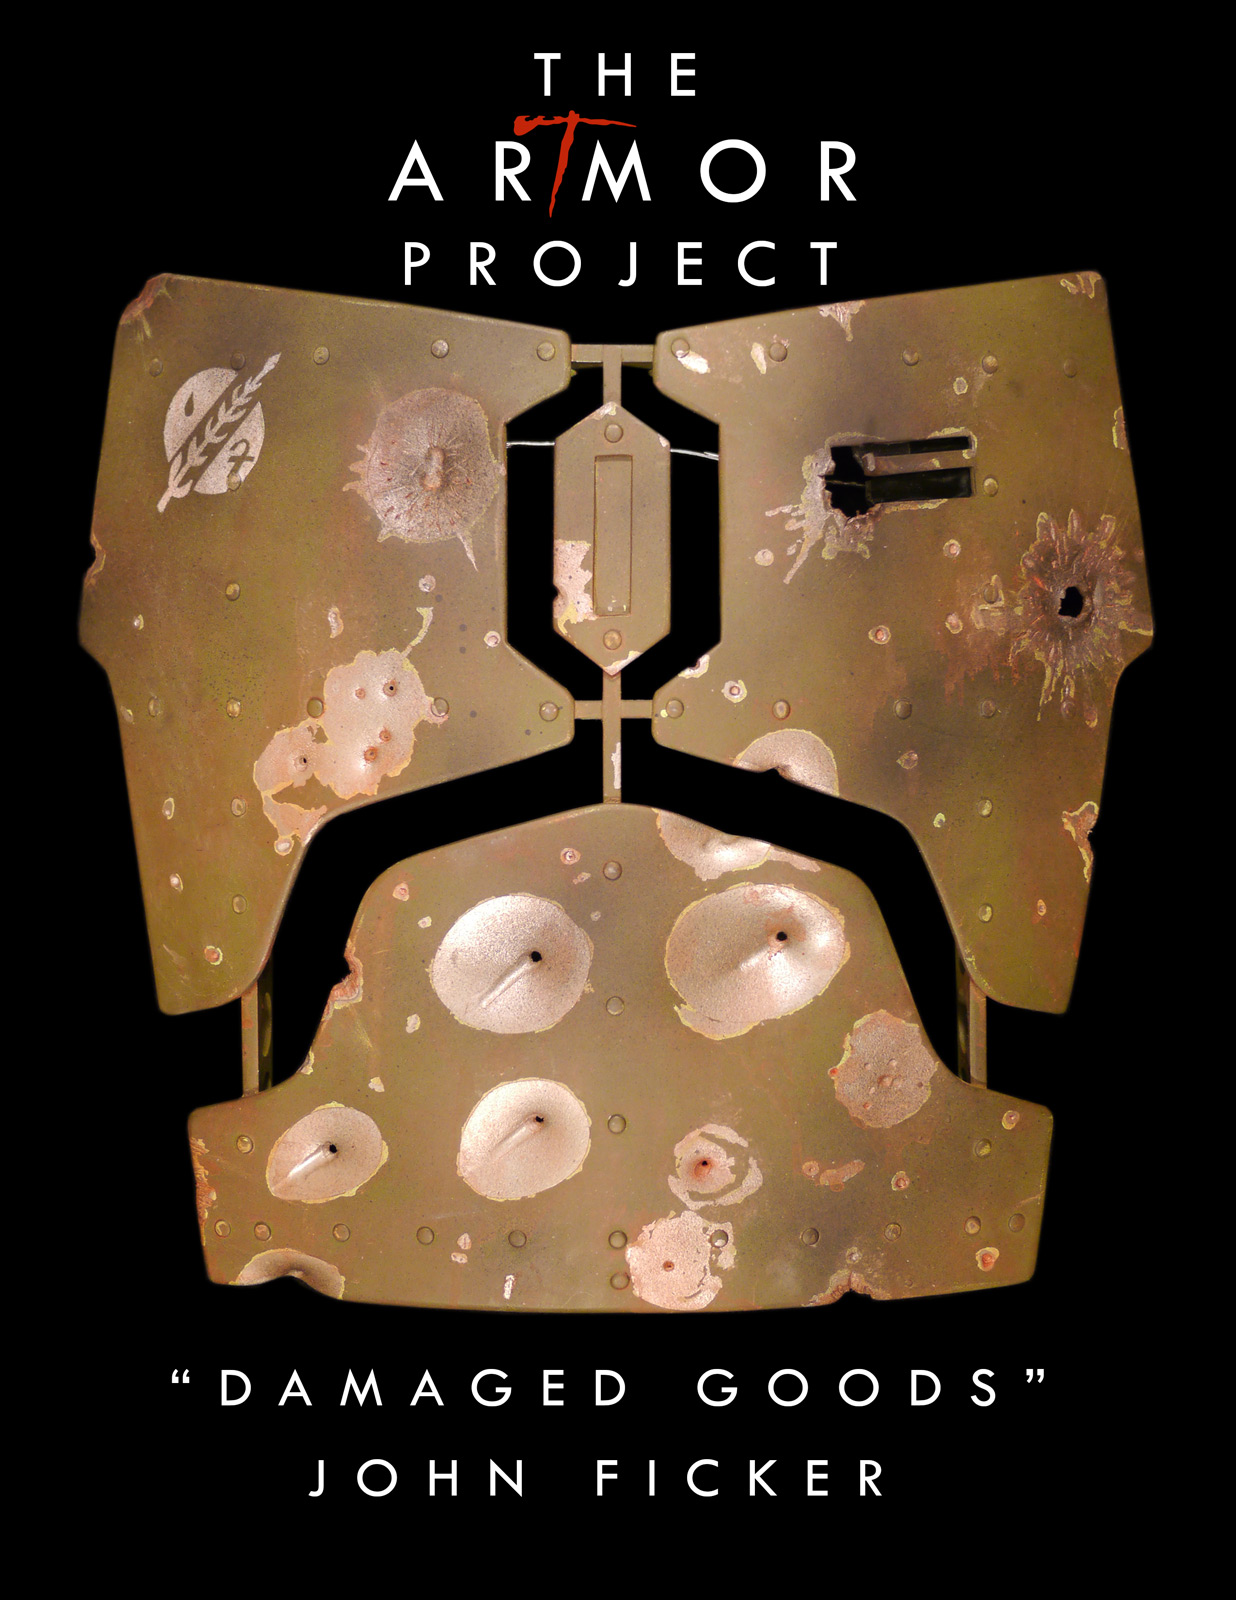 ArTmor 2015: Damaged Goods